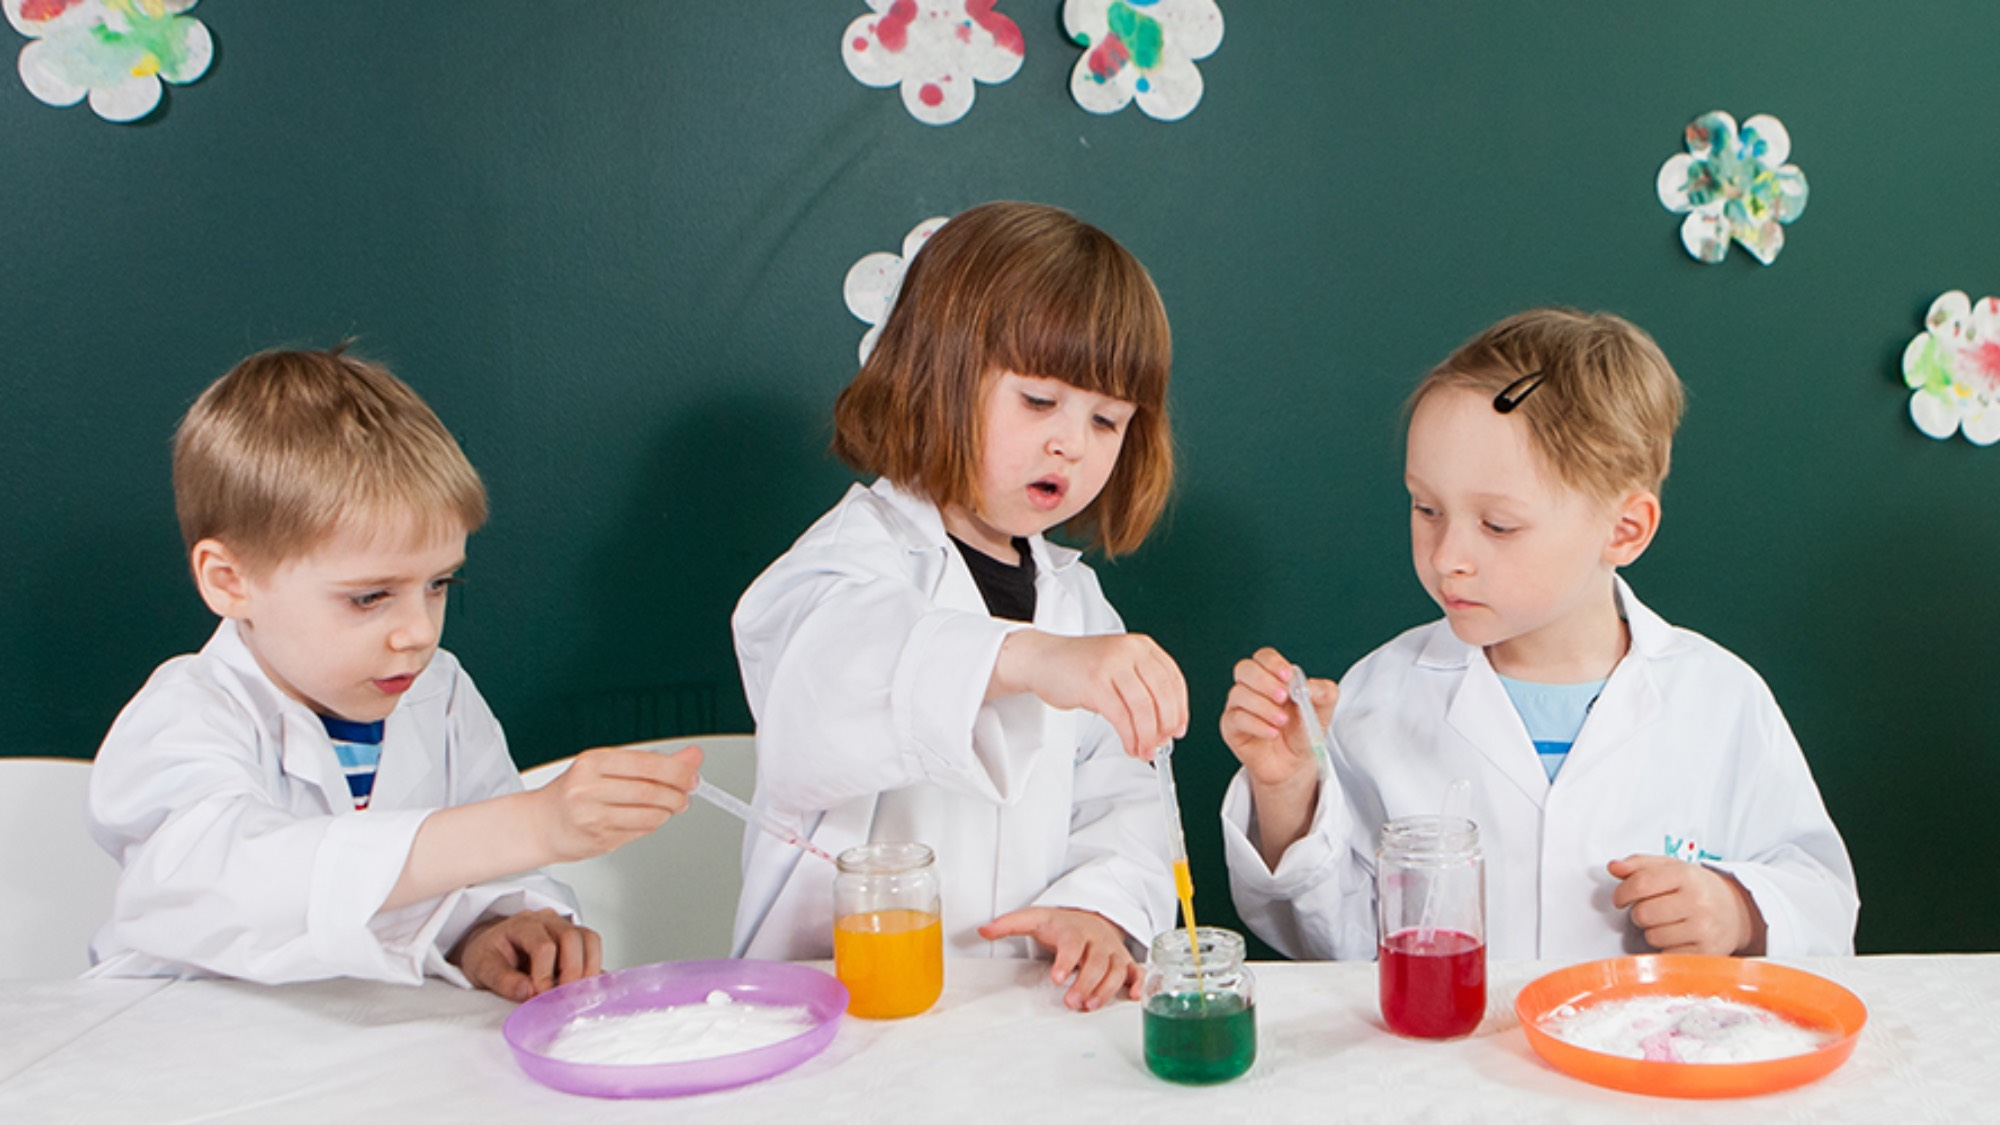 Three kids dressed as scientists carry out an experiment